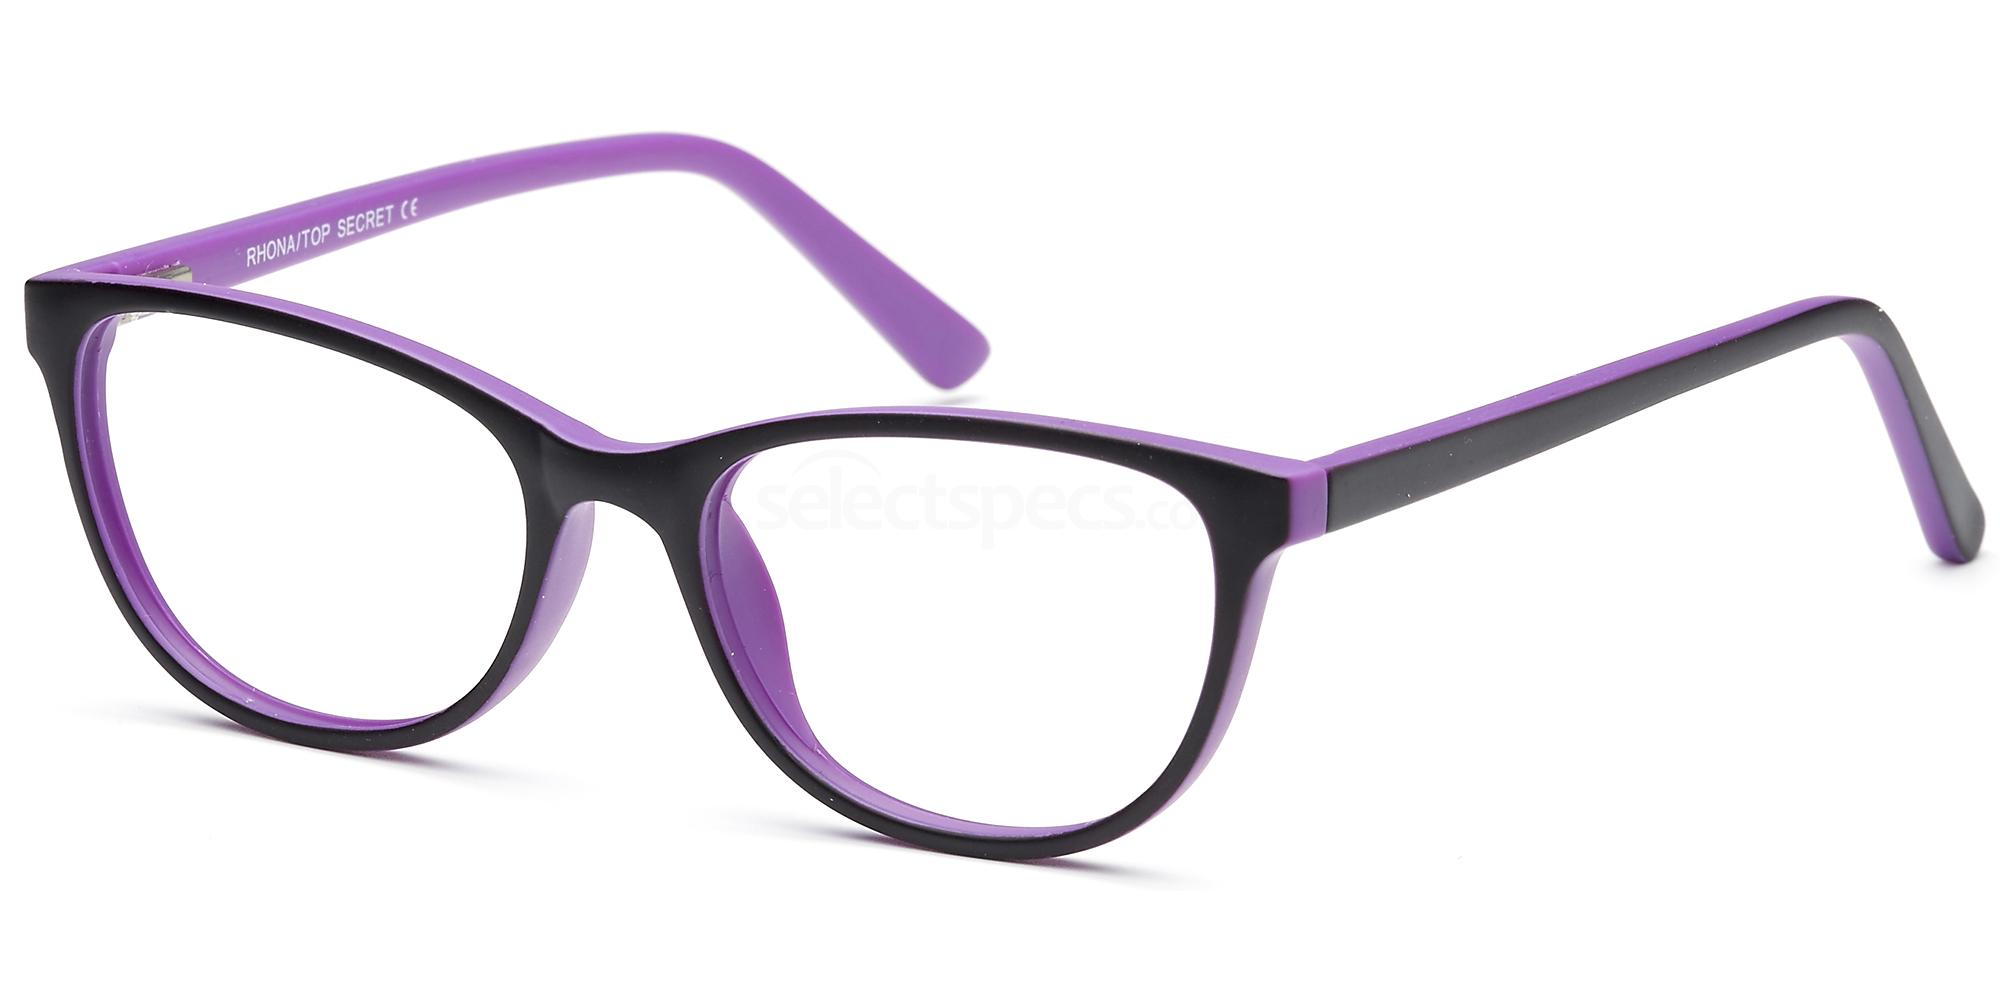 C1 RHONA , Top Secret KIDS